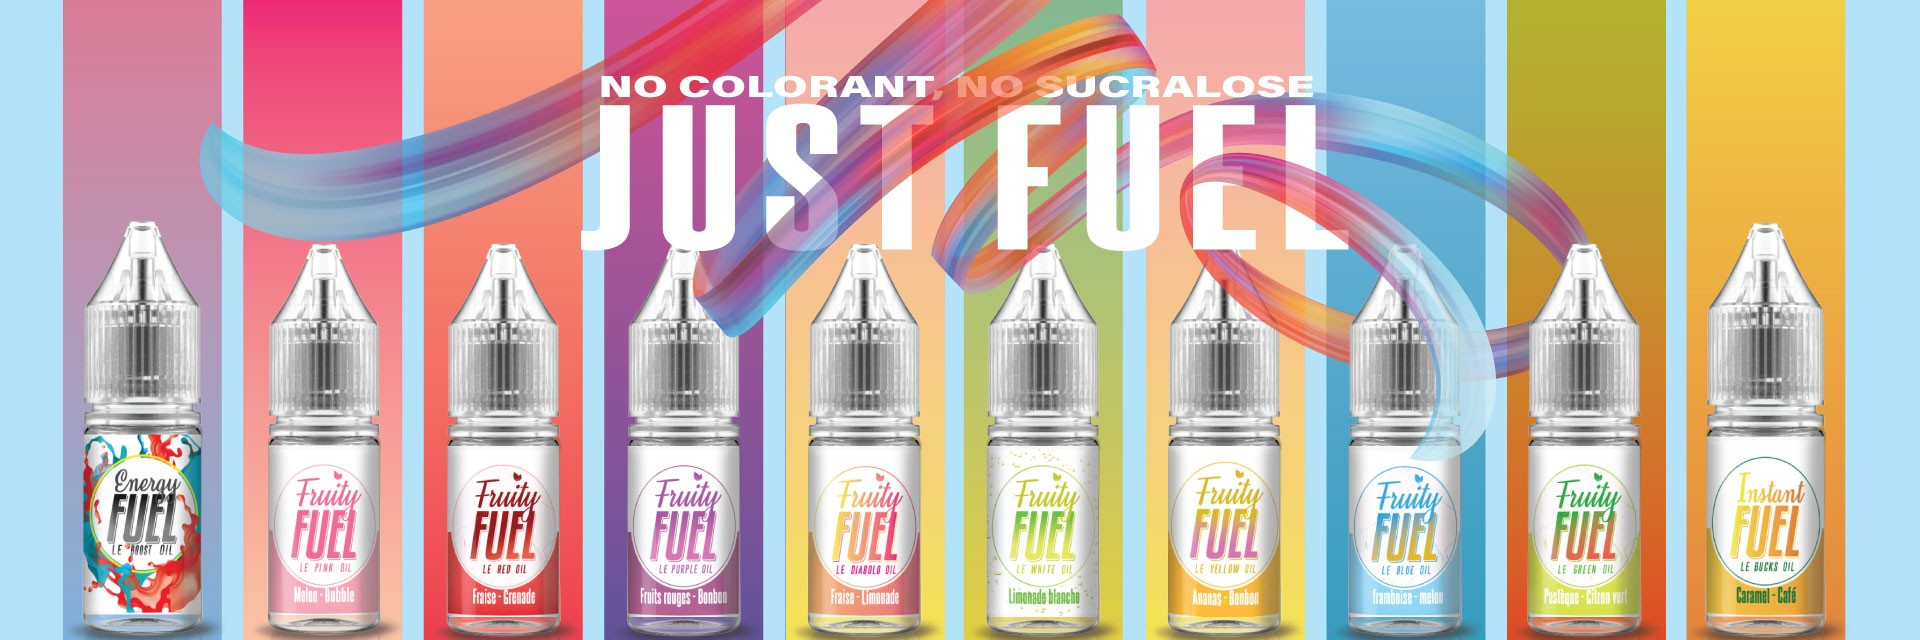 Fruity fuel - Just Fuel 10ml